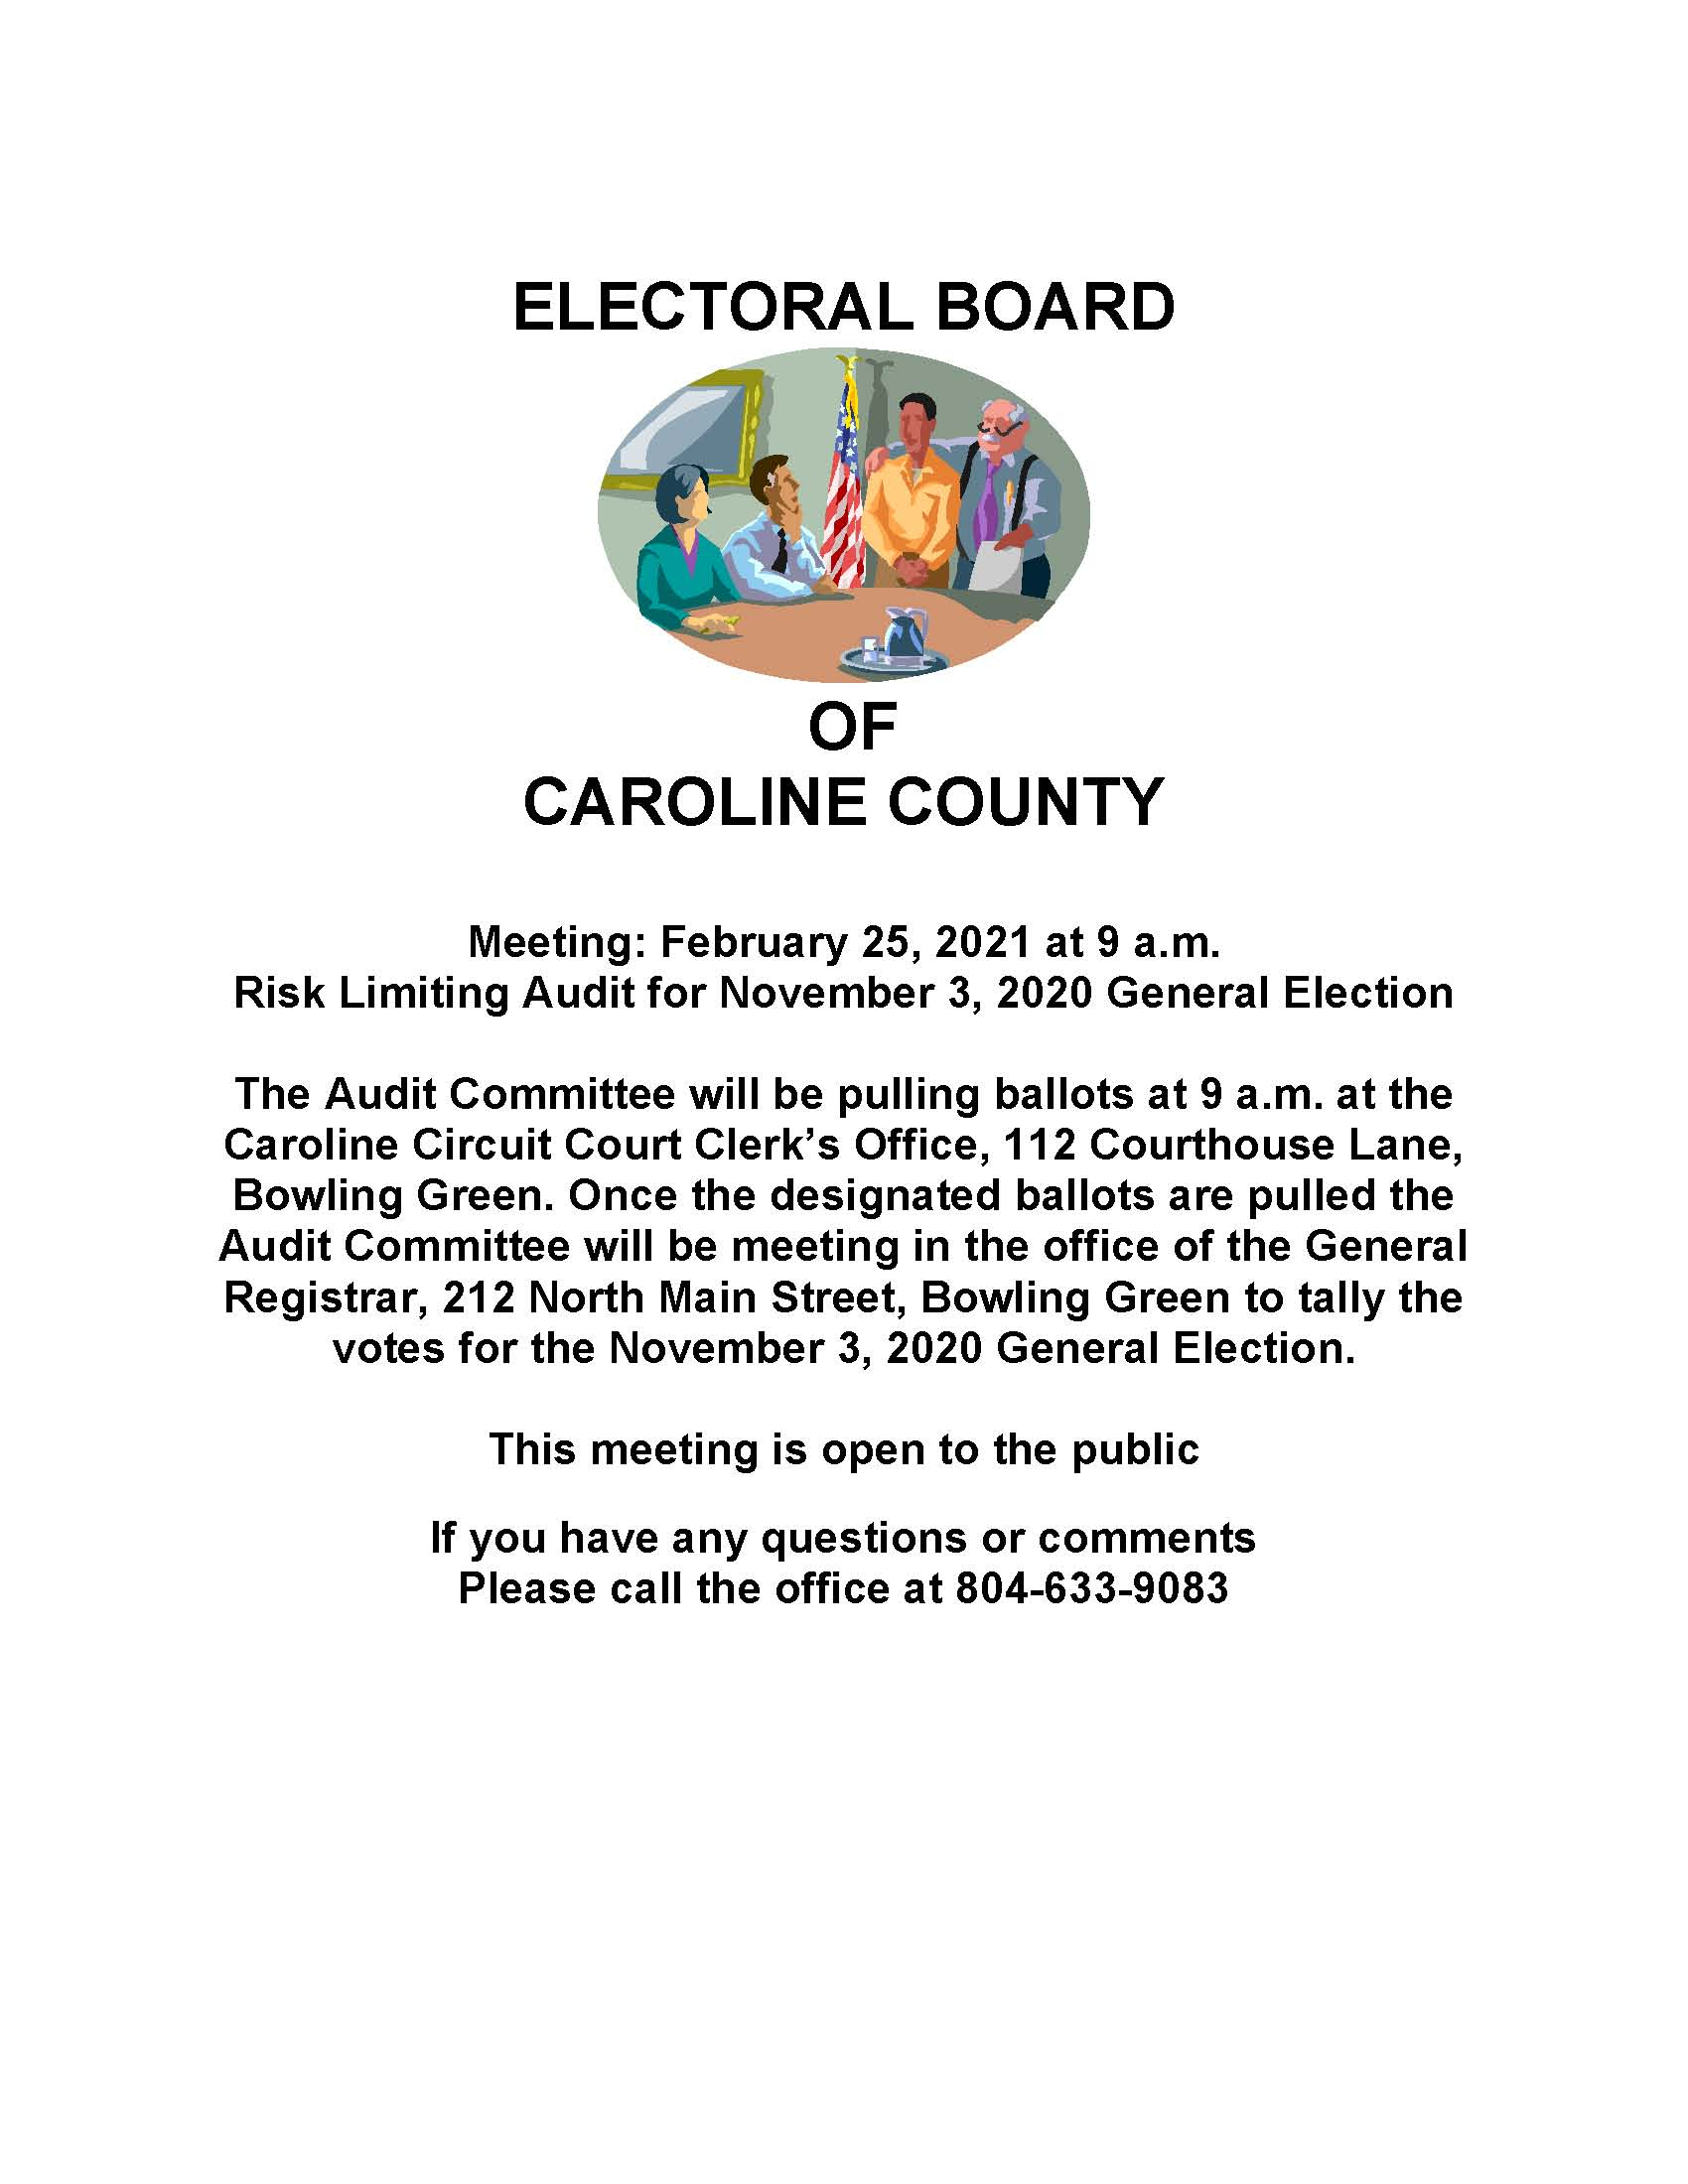 February 25, 2021 Electoral Board Meeting Notice